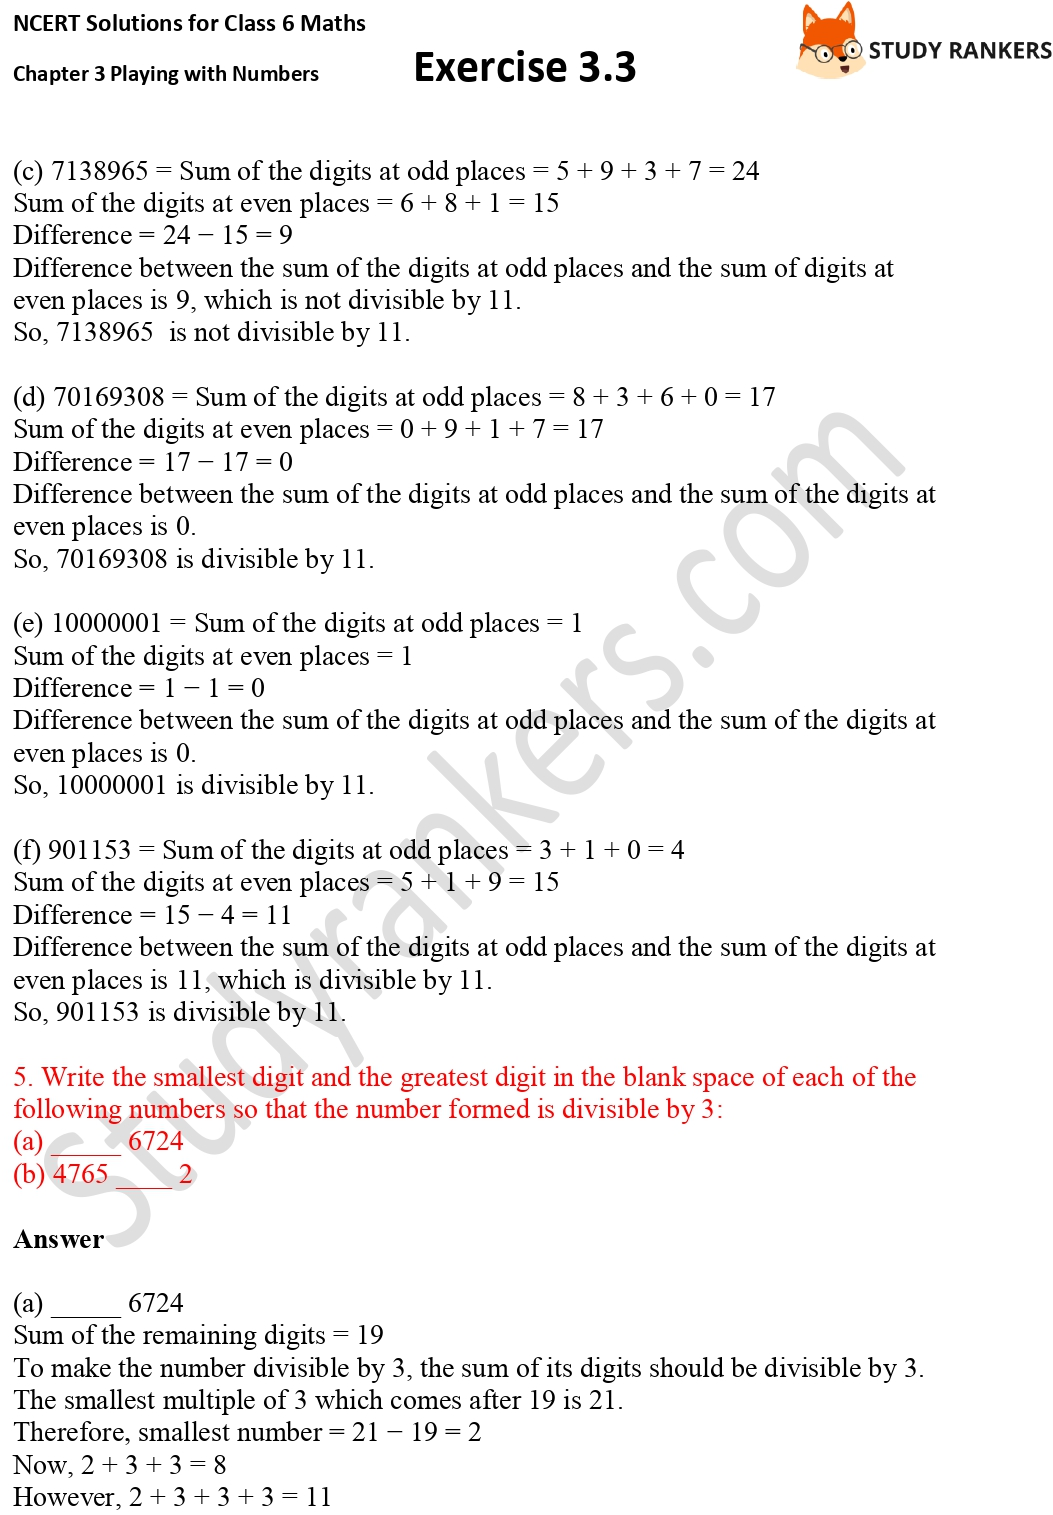 NCERT Solutions for Class 6 Maths Chapter 3 Playing with Numbers Exercise 3.3 Part 5